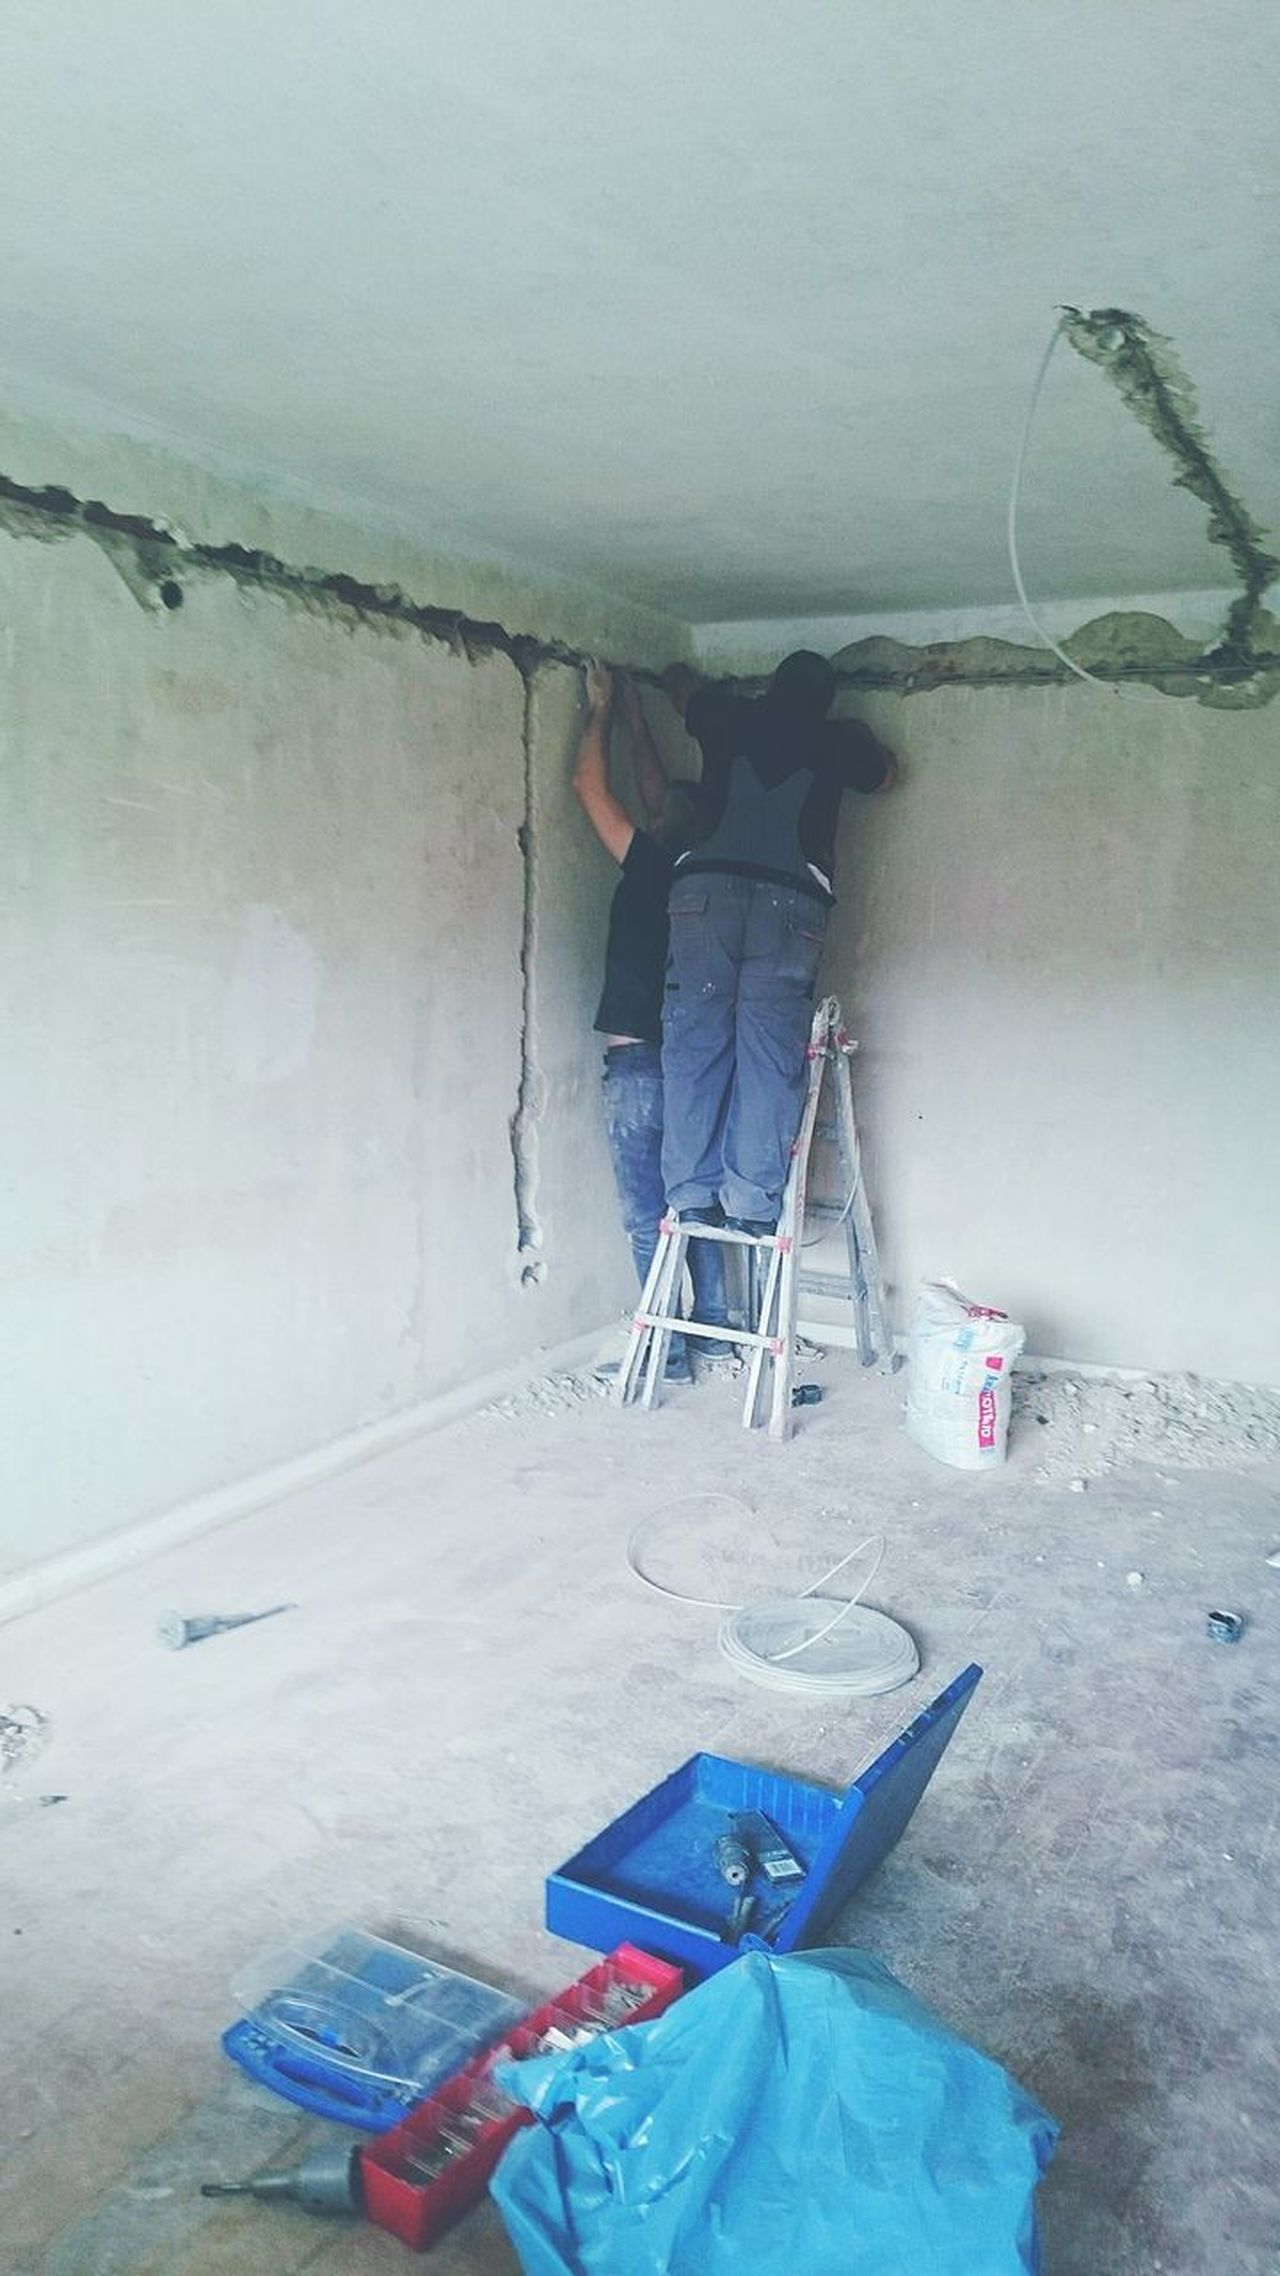 Home Improvement DIY Renovation Paint Roller Paintbrush Paint Can Working Indoors  Home Interior Occupation Sweeping Manual Worker Work Tool Business Finance And Industry Construction Site One Person Repairing Adult People Standing